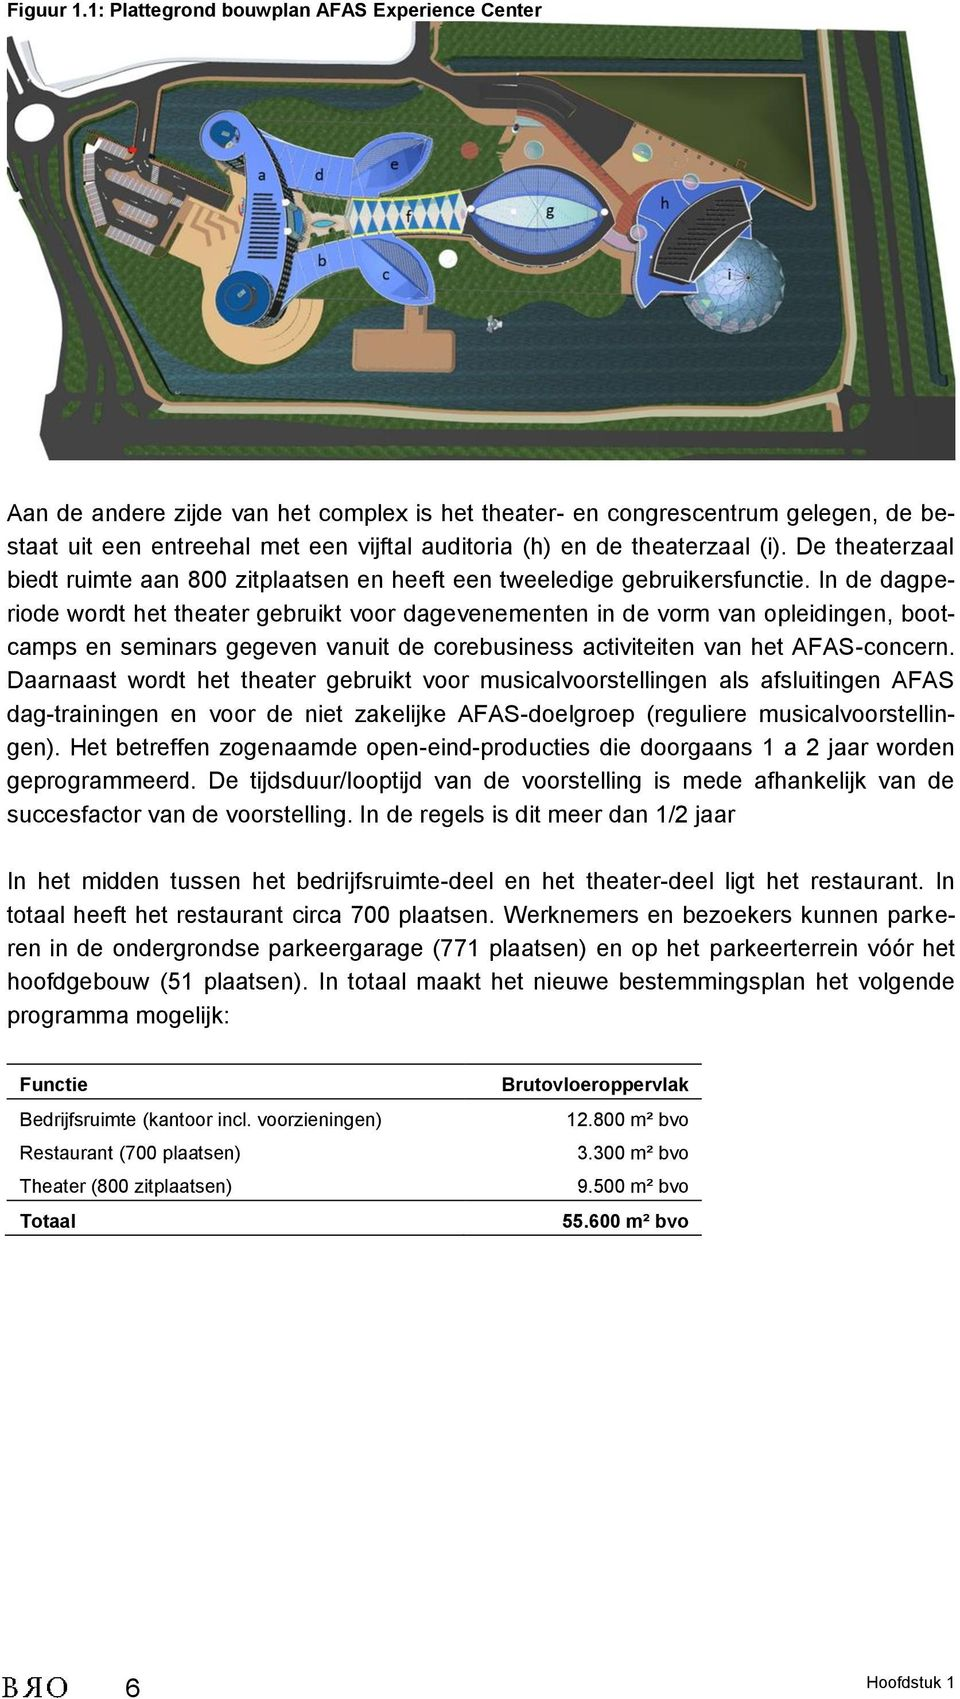 beatrix theater plattegrond